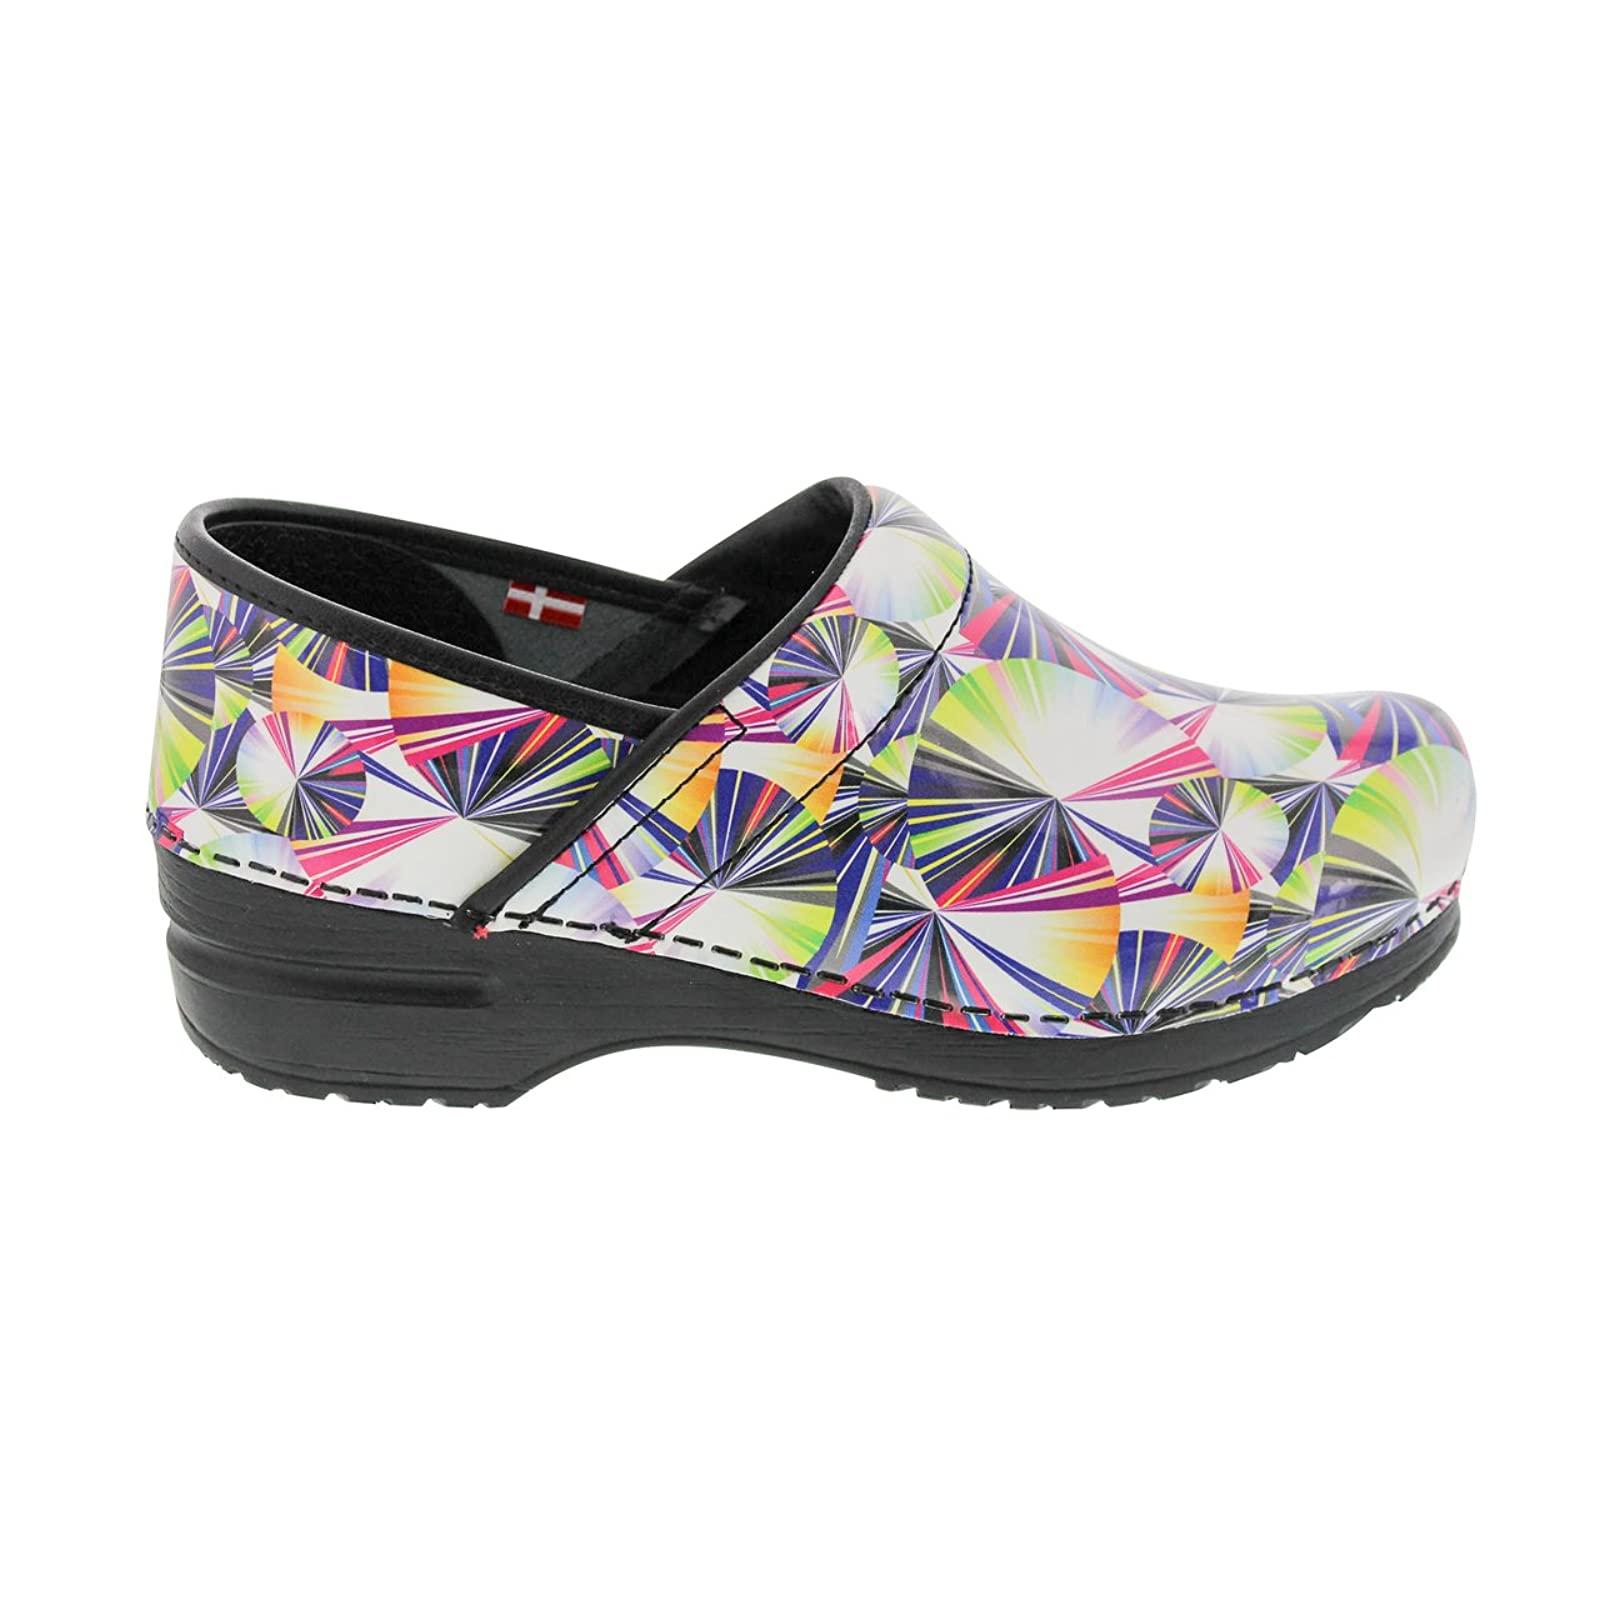 Sanita Women's Original Pro. Geo Clog 459156 Multi - 2